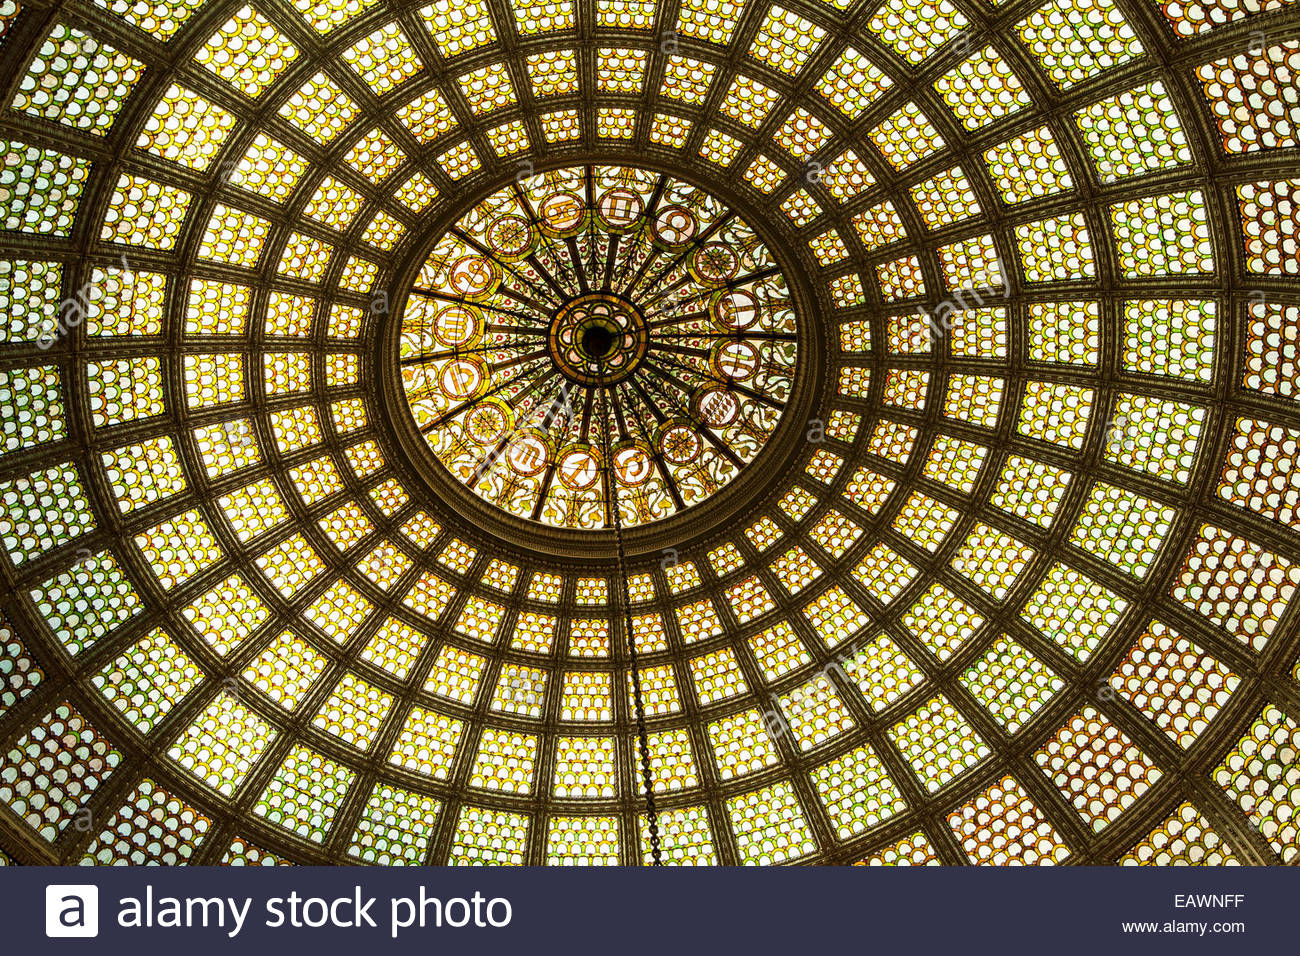 Zodiac signs encircled in the Tiffany favrile glass dome in the Chicago Cultural Center. - Stock Image